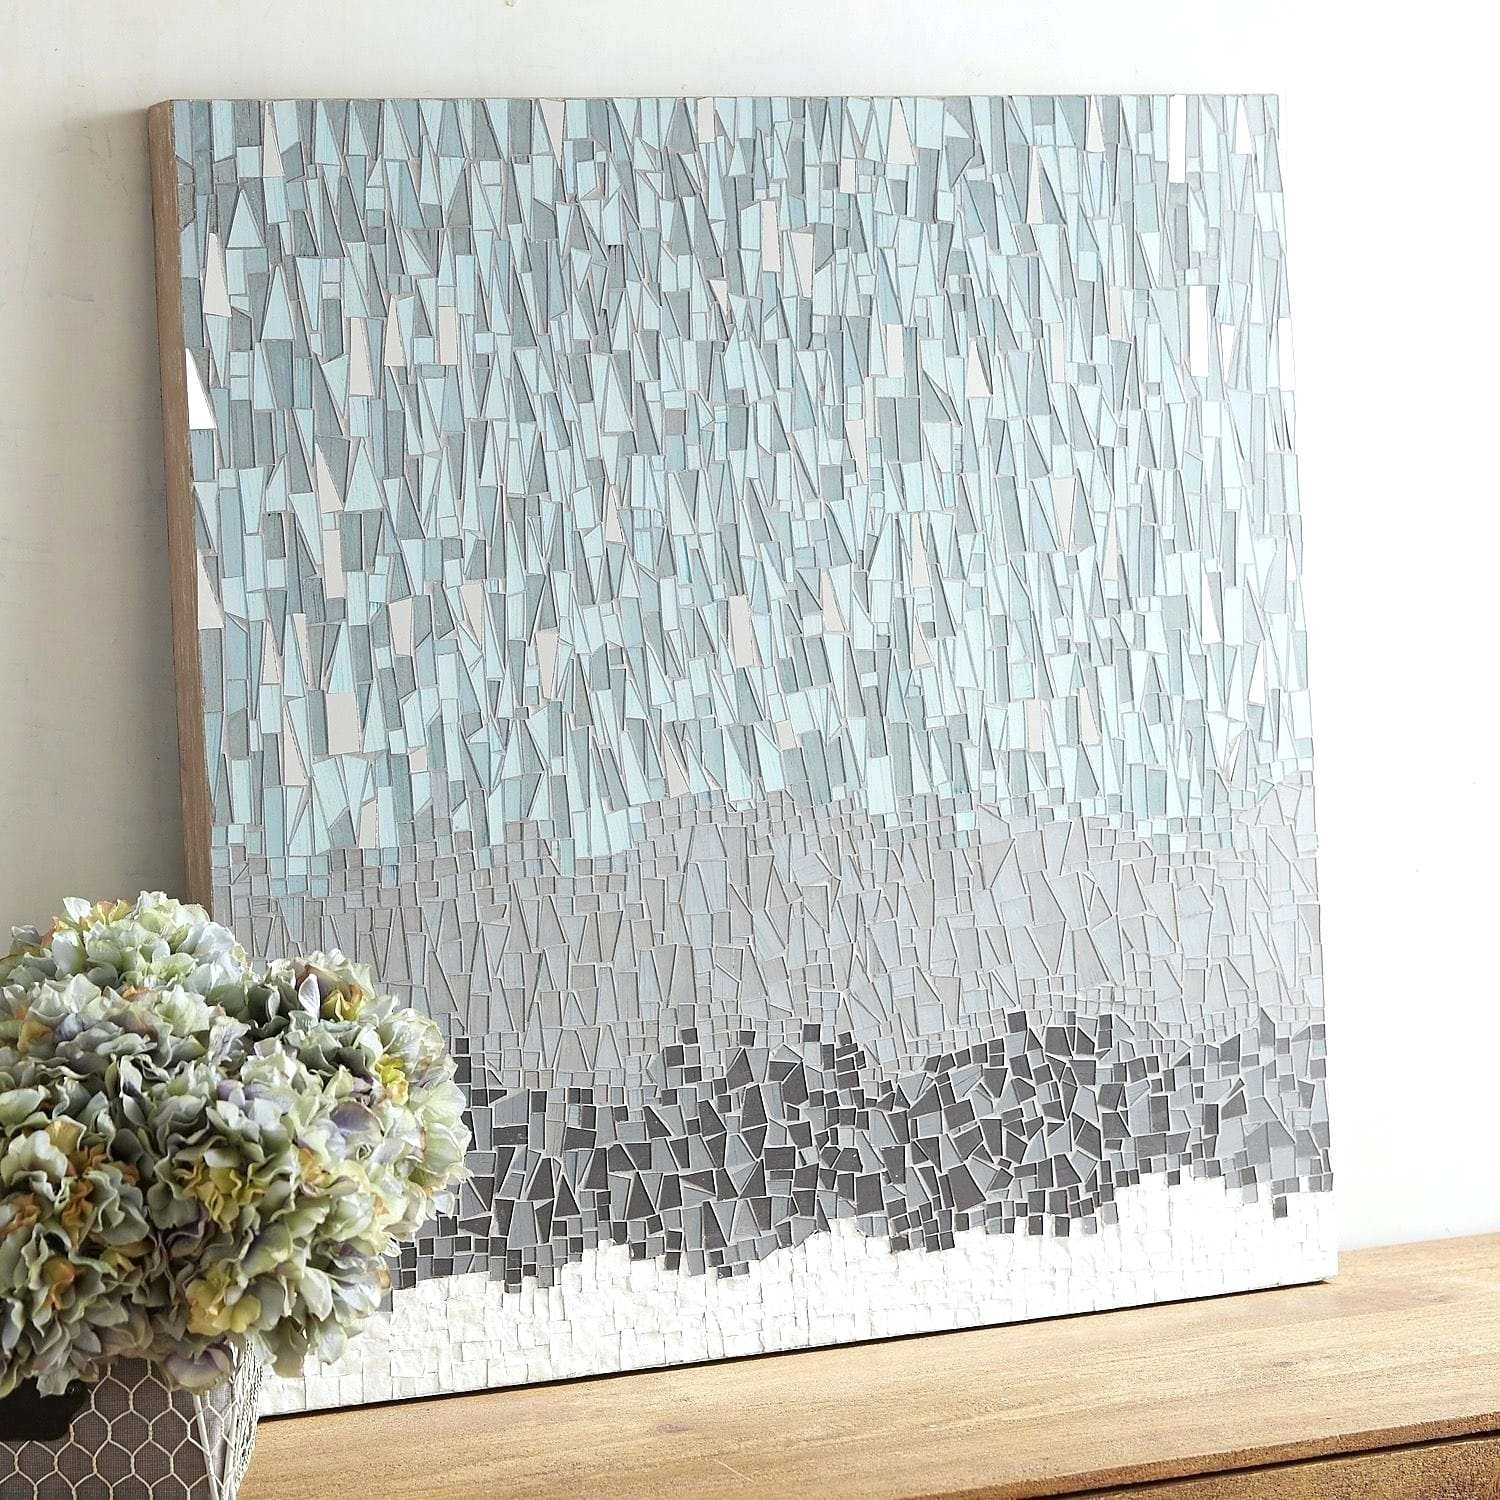 Mosaic Wall Art Glass Mosaic Wall Art For Sale – Ryauxlarsen Regarding Recent Mosaic Wall Art (Gallery 11 of 15)